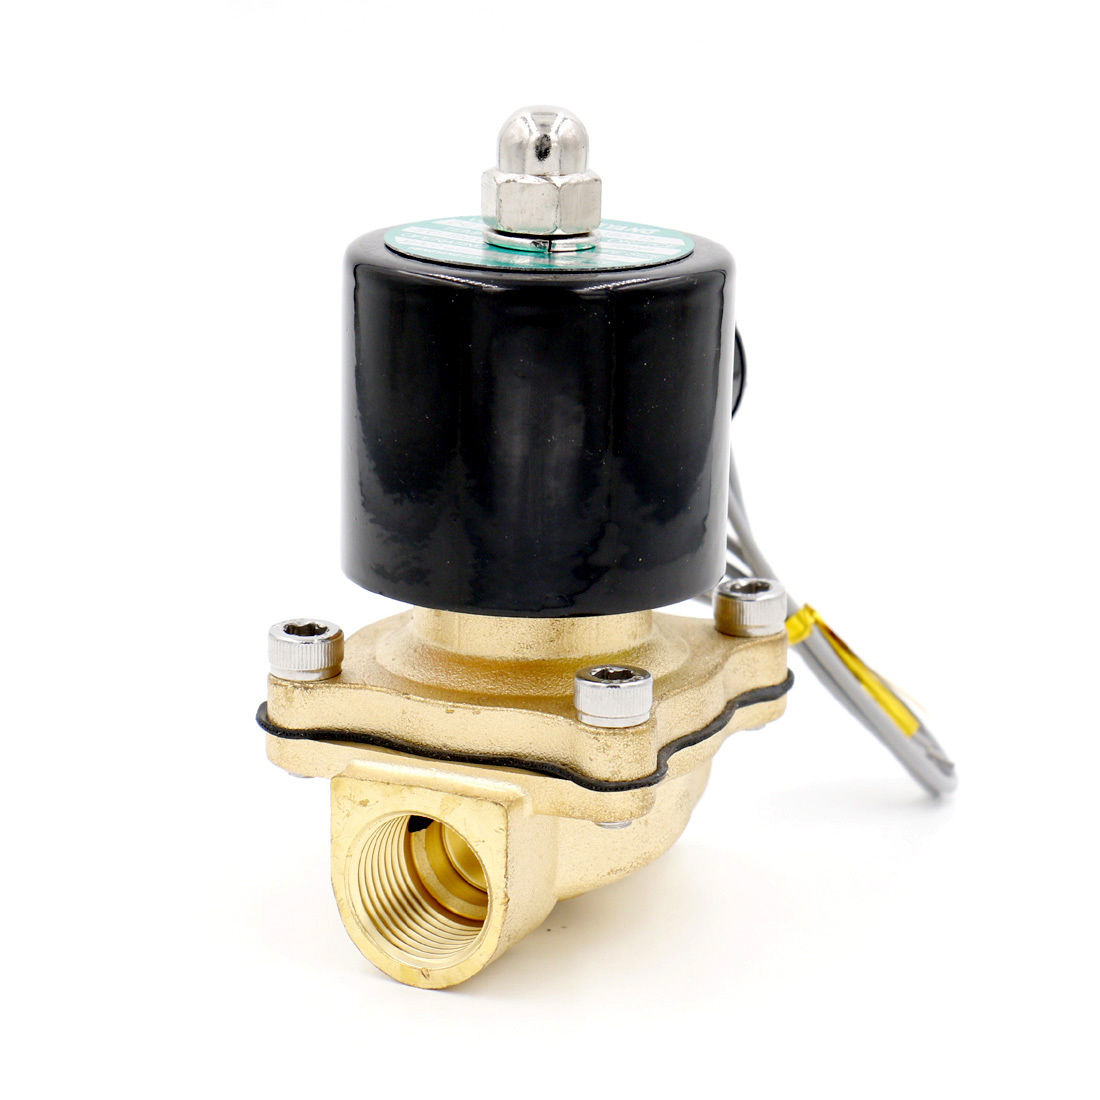 Brass Electric Solenoid Valve 2W-160-15 1/2 Inch NPT for Air Water Valve 110V NC 1 2 built side inlet floating ball valve automatic water level control valve for water tank f water tank water tower